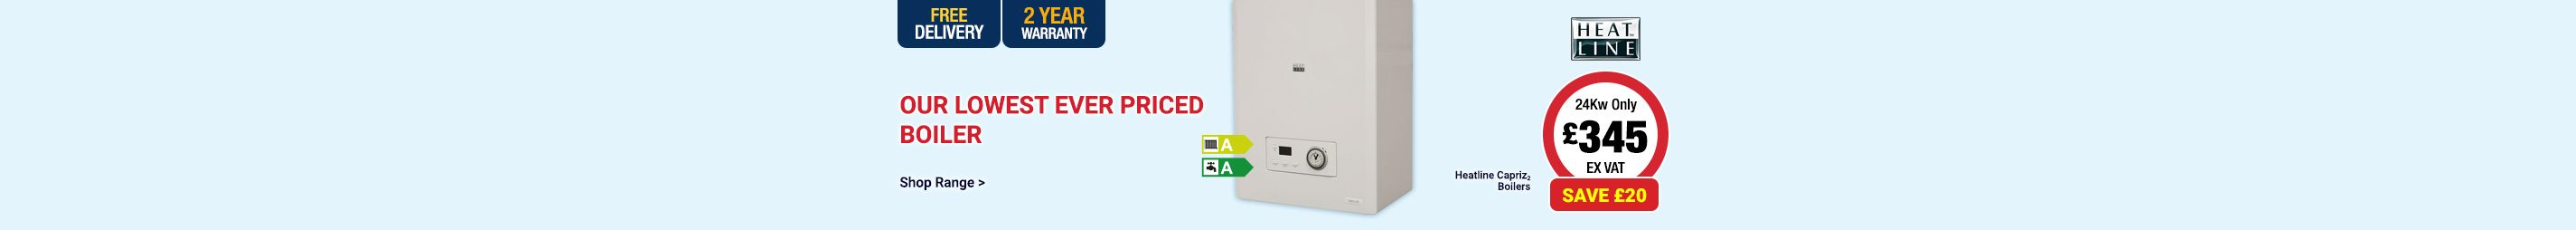 Our Lowest Ever Priced Boiler!